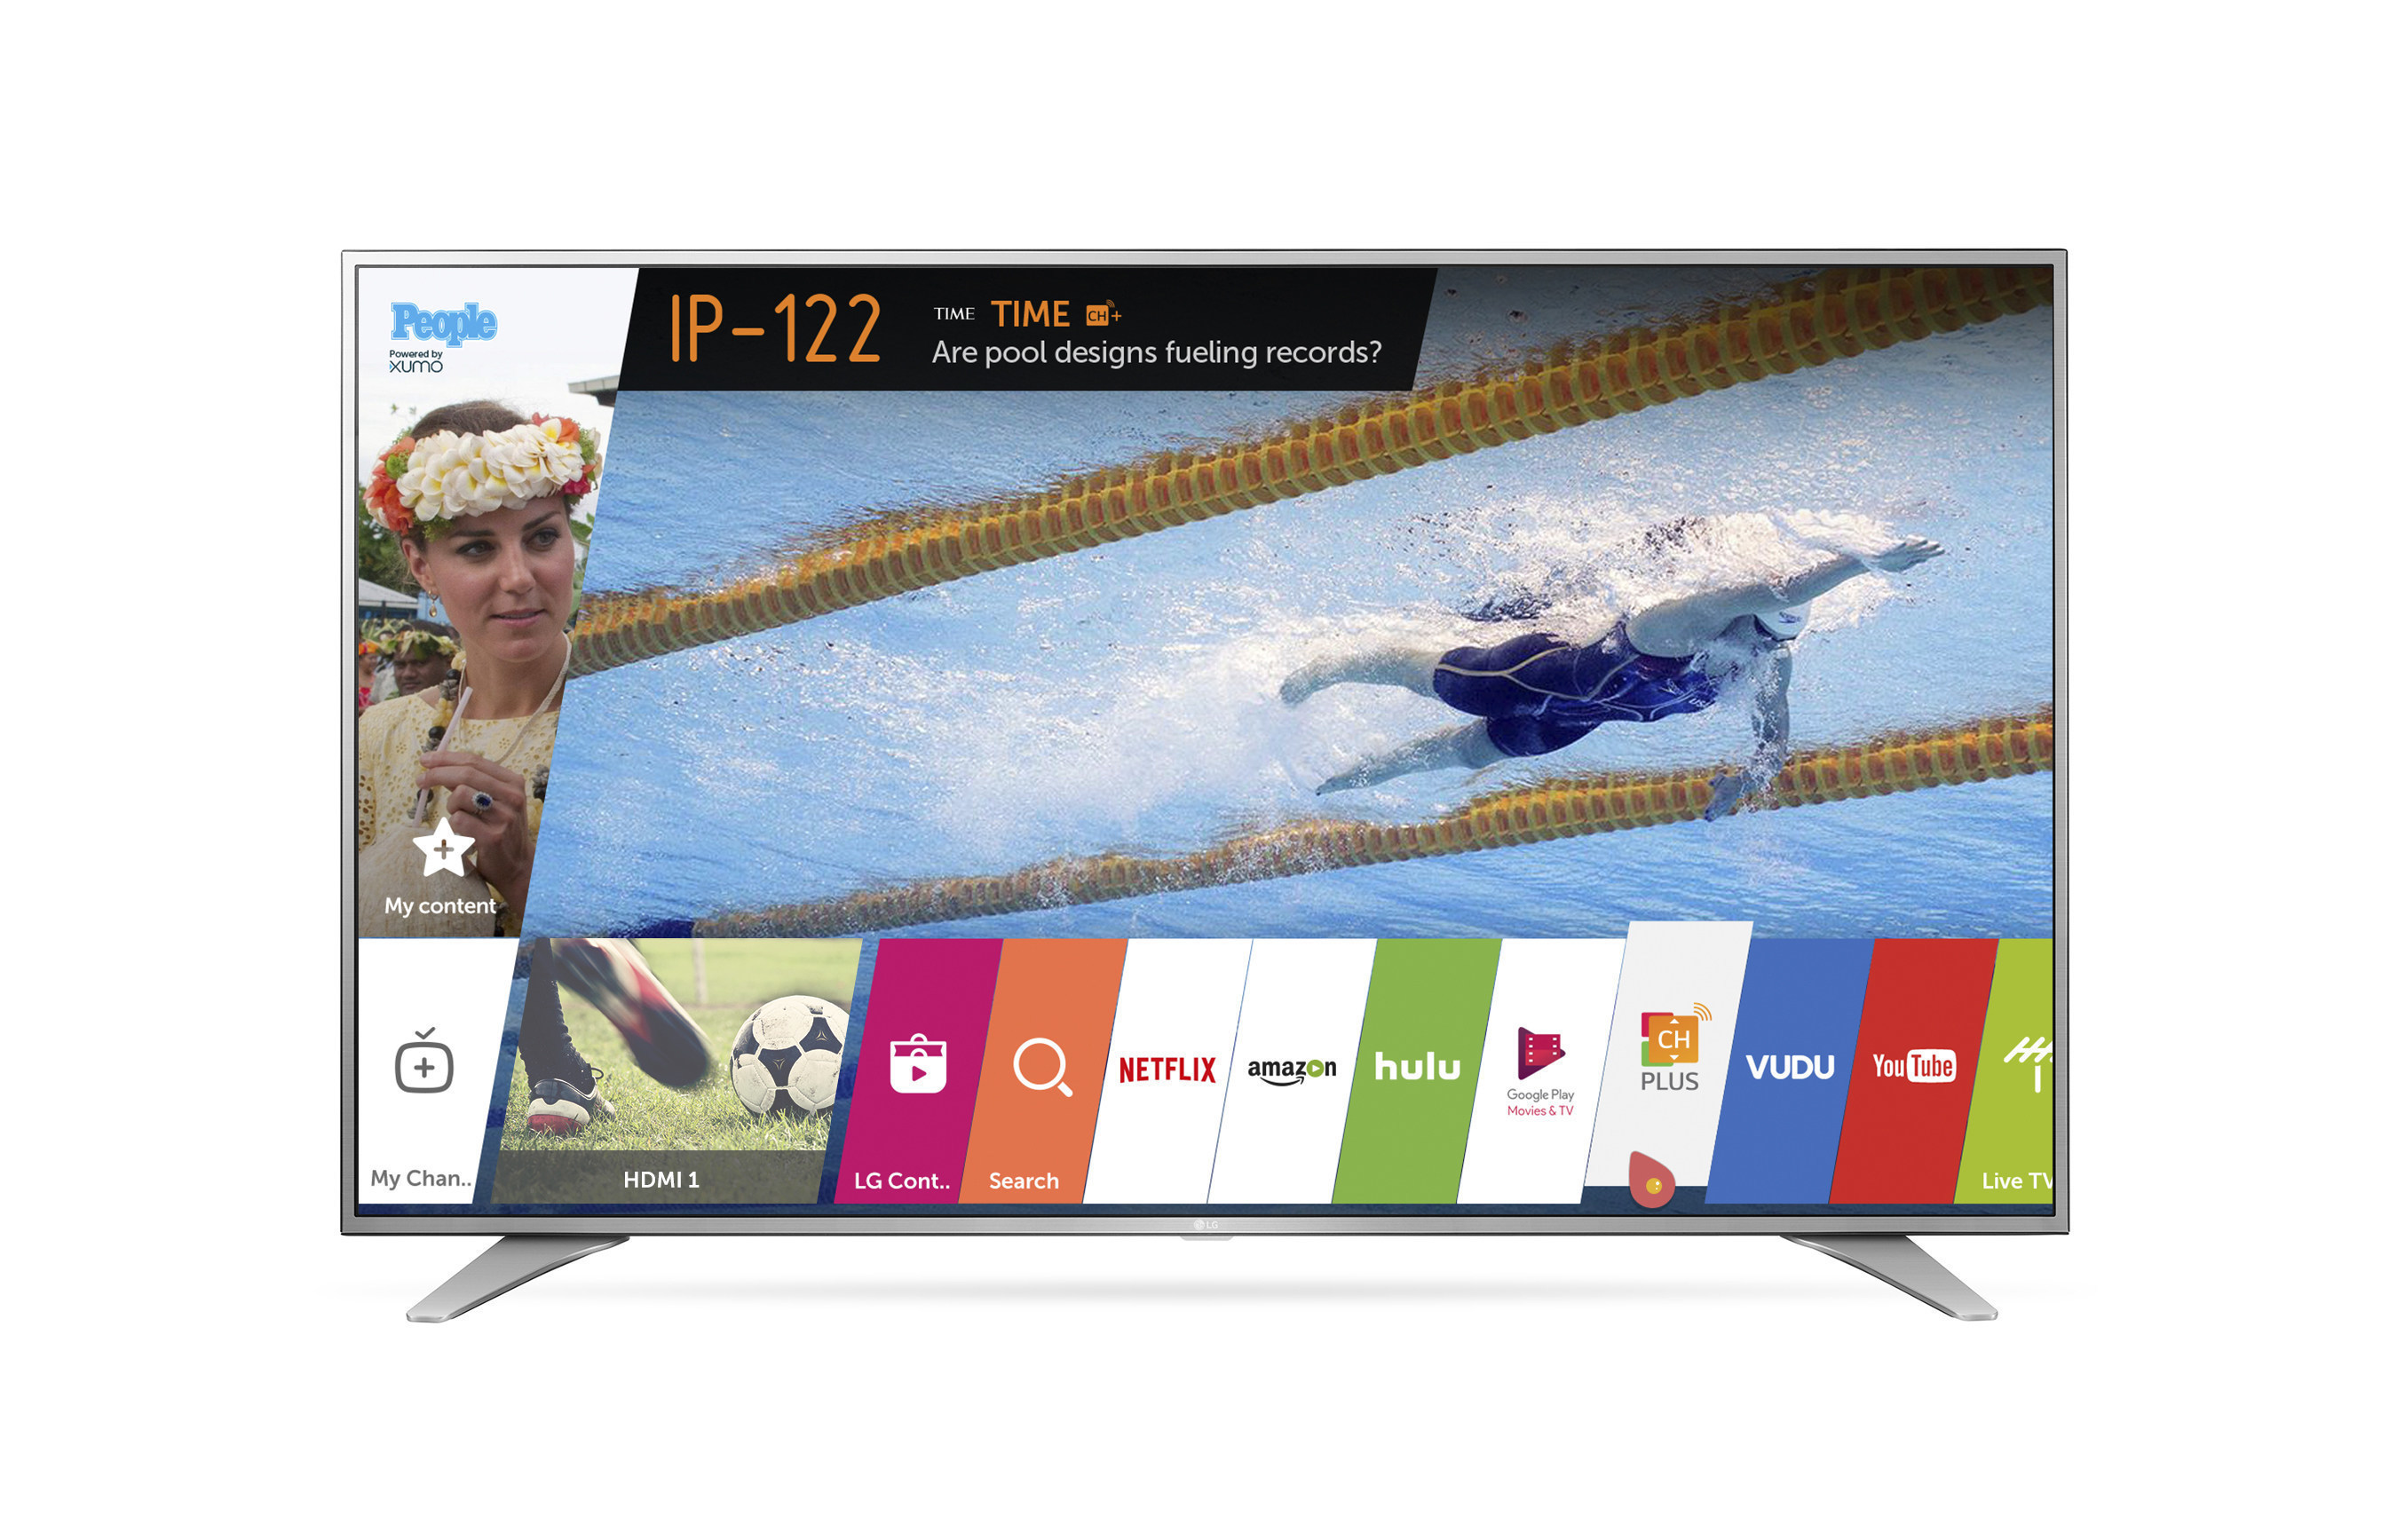 Lg Nederland Lg Launches Channel Plus On 2016 Smart Tvs For Seamless Access